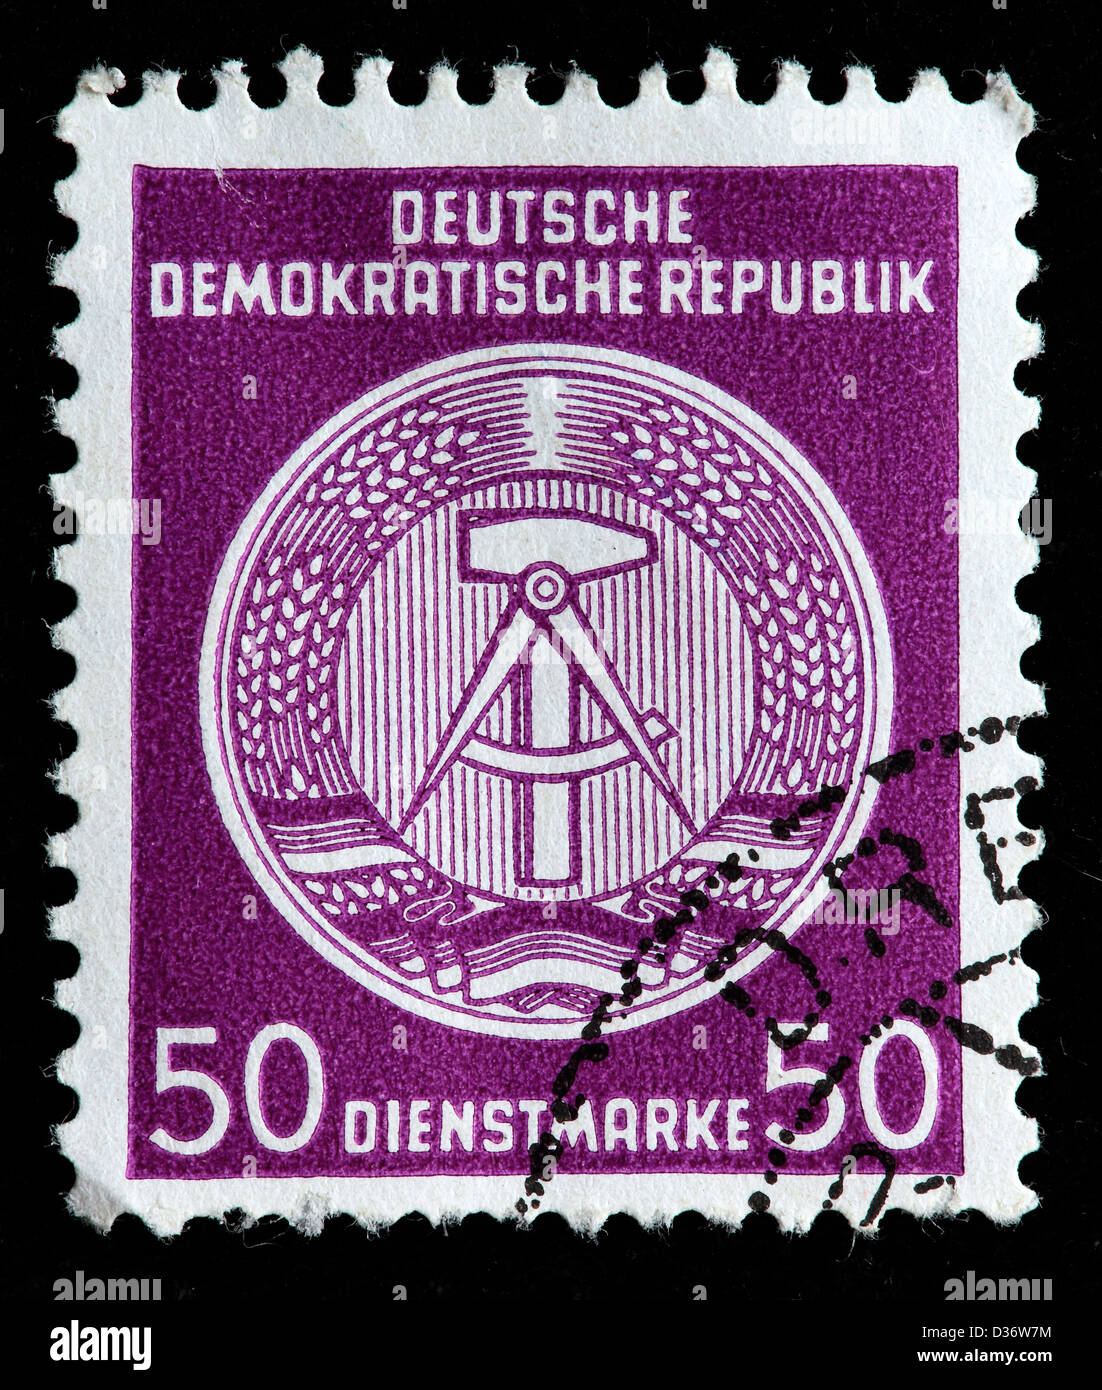 Coat of arms, postage stamp, Germany, 1954 - Stock Image